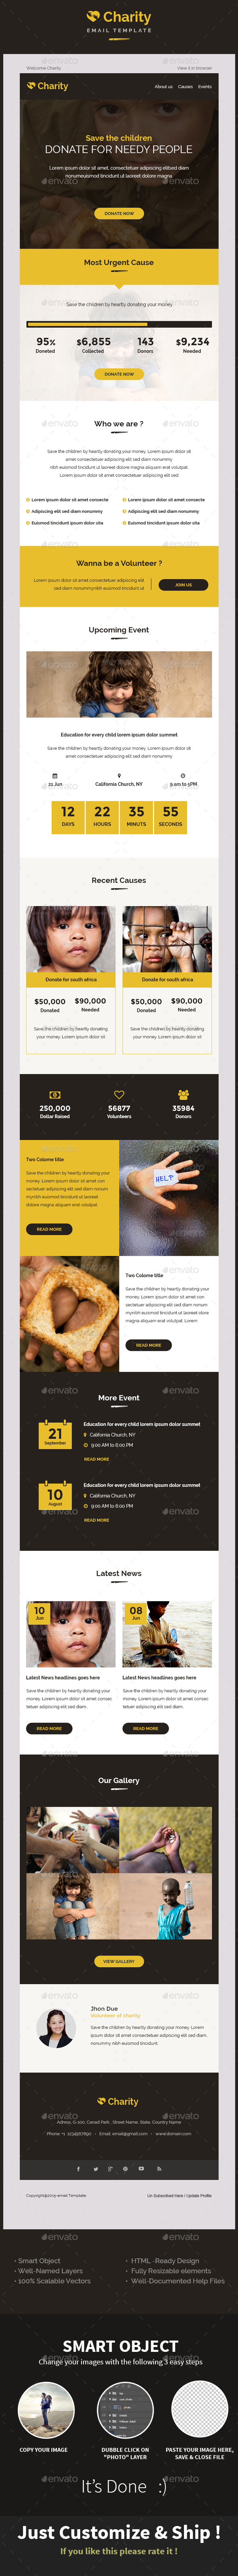 GraphicRiver Charity Nonprofit Email Template PSD 11772781